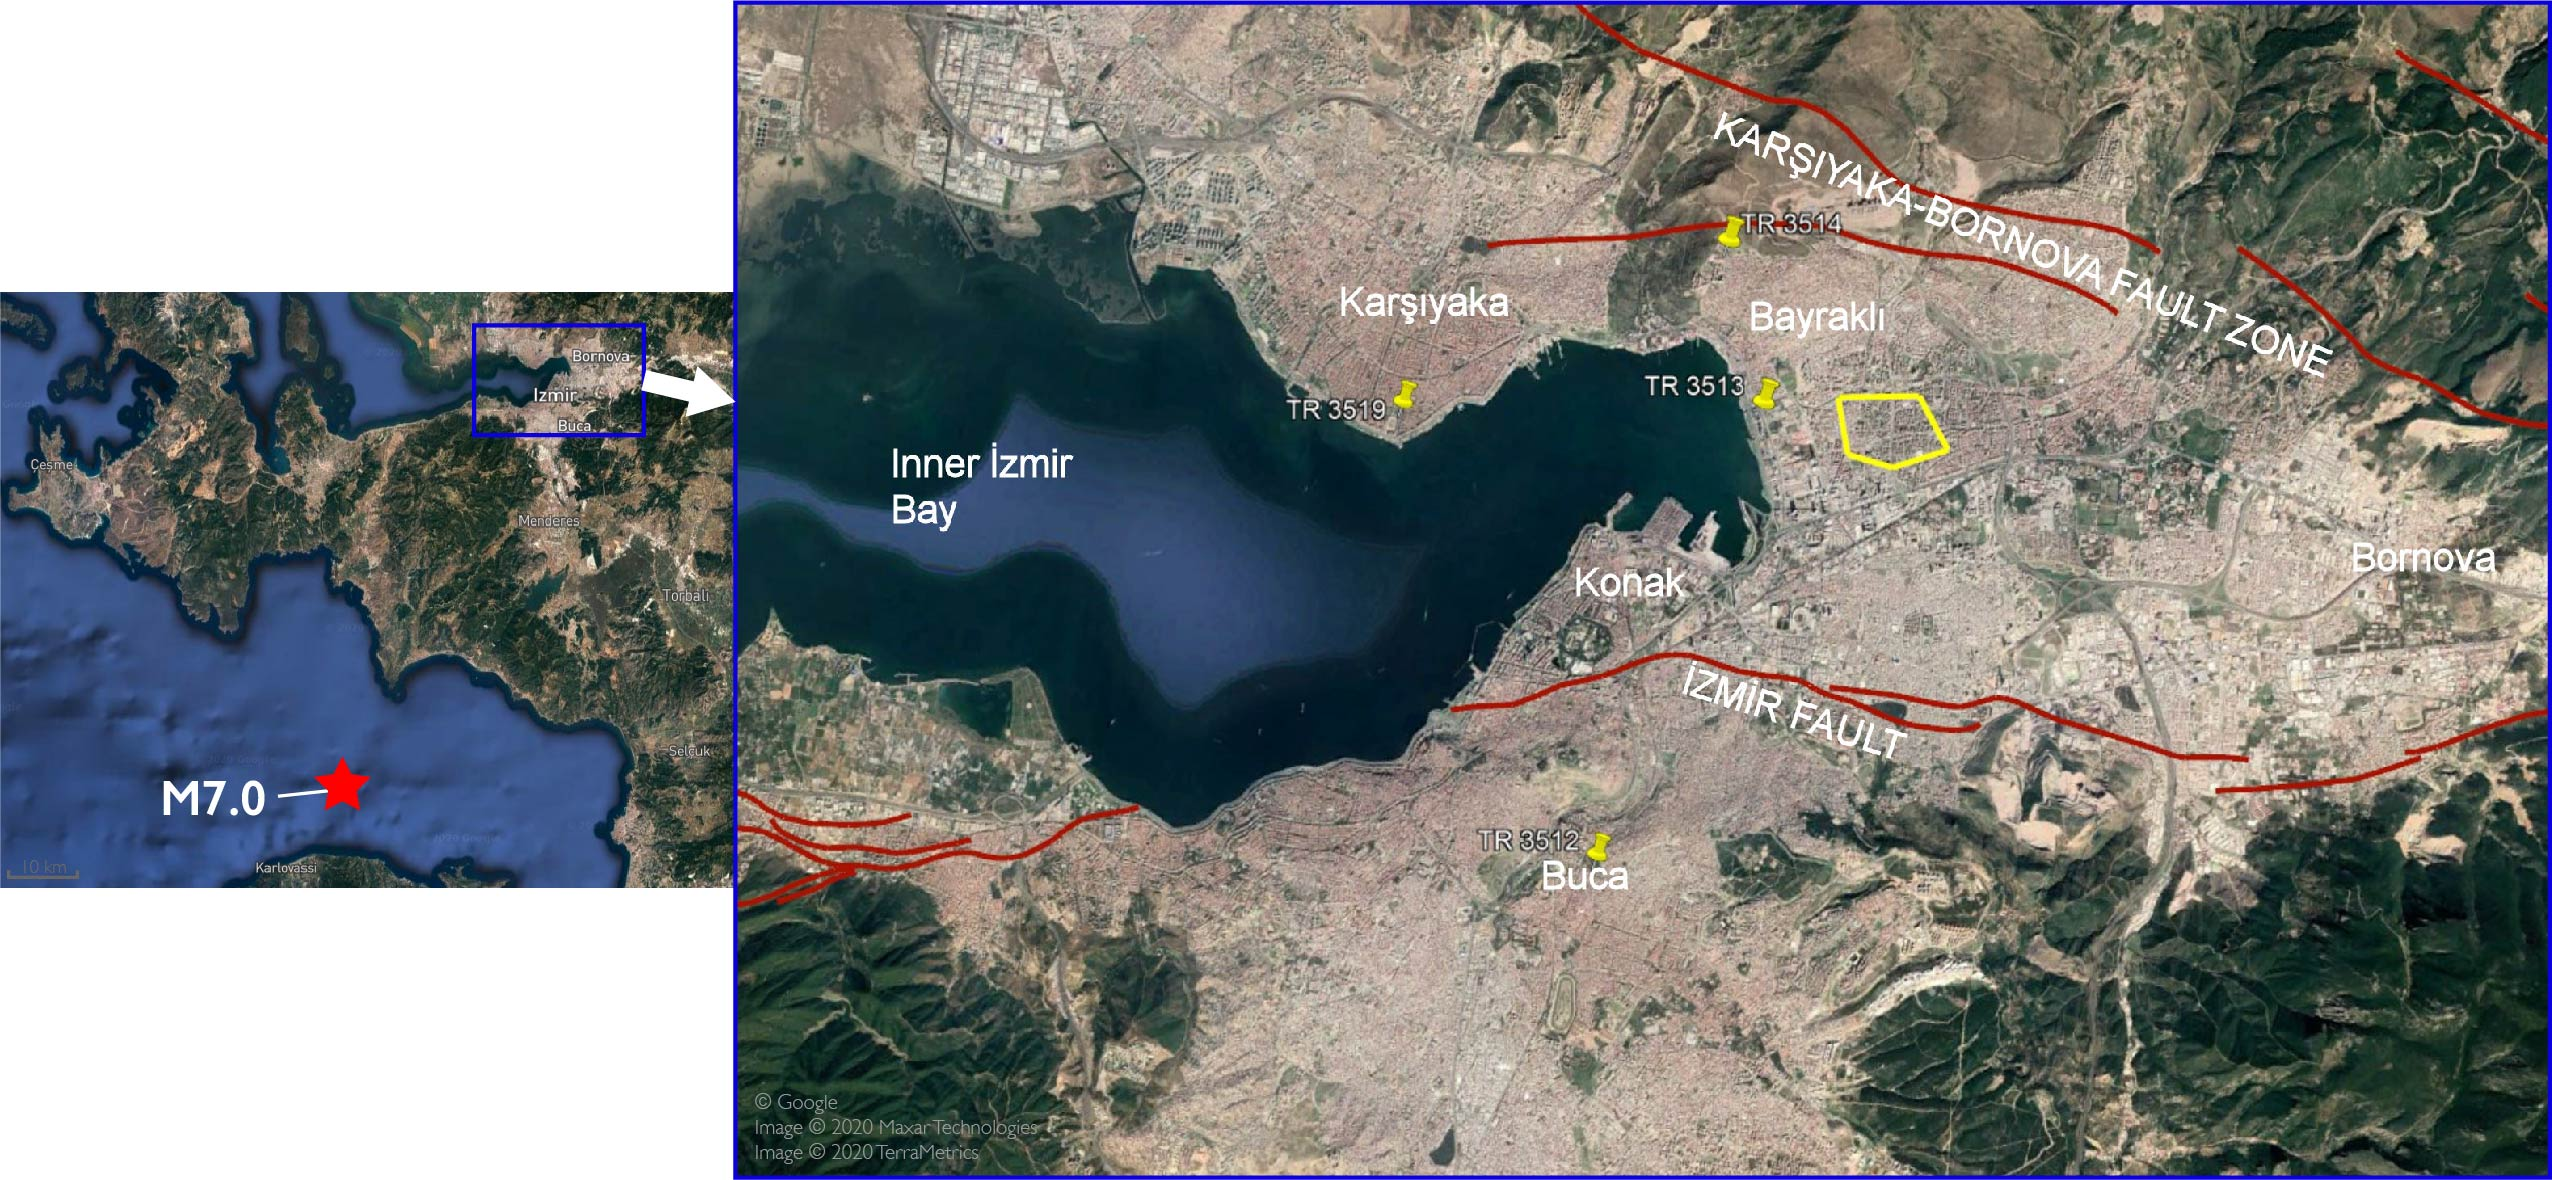 Map of eastern Aegean with locations of stations around indicated.